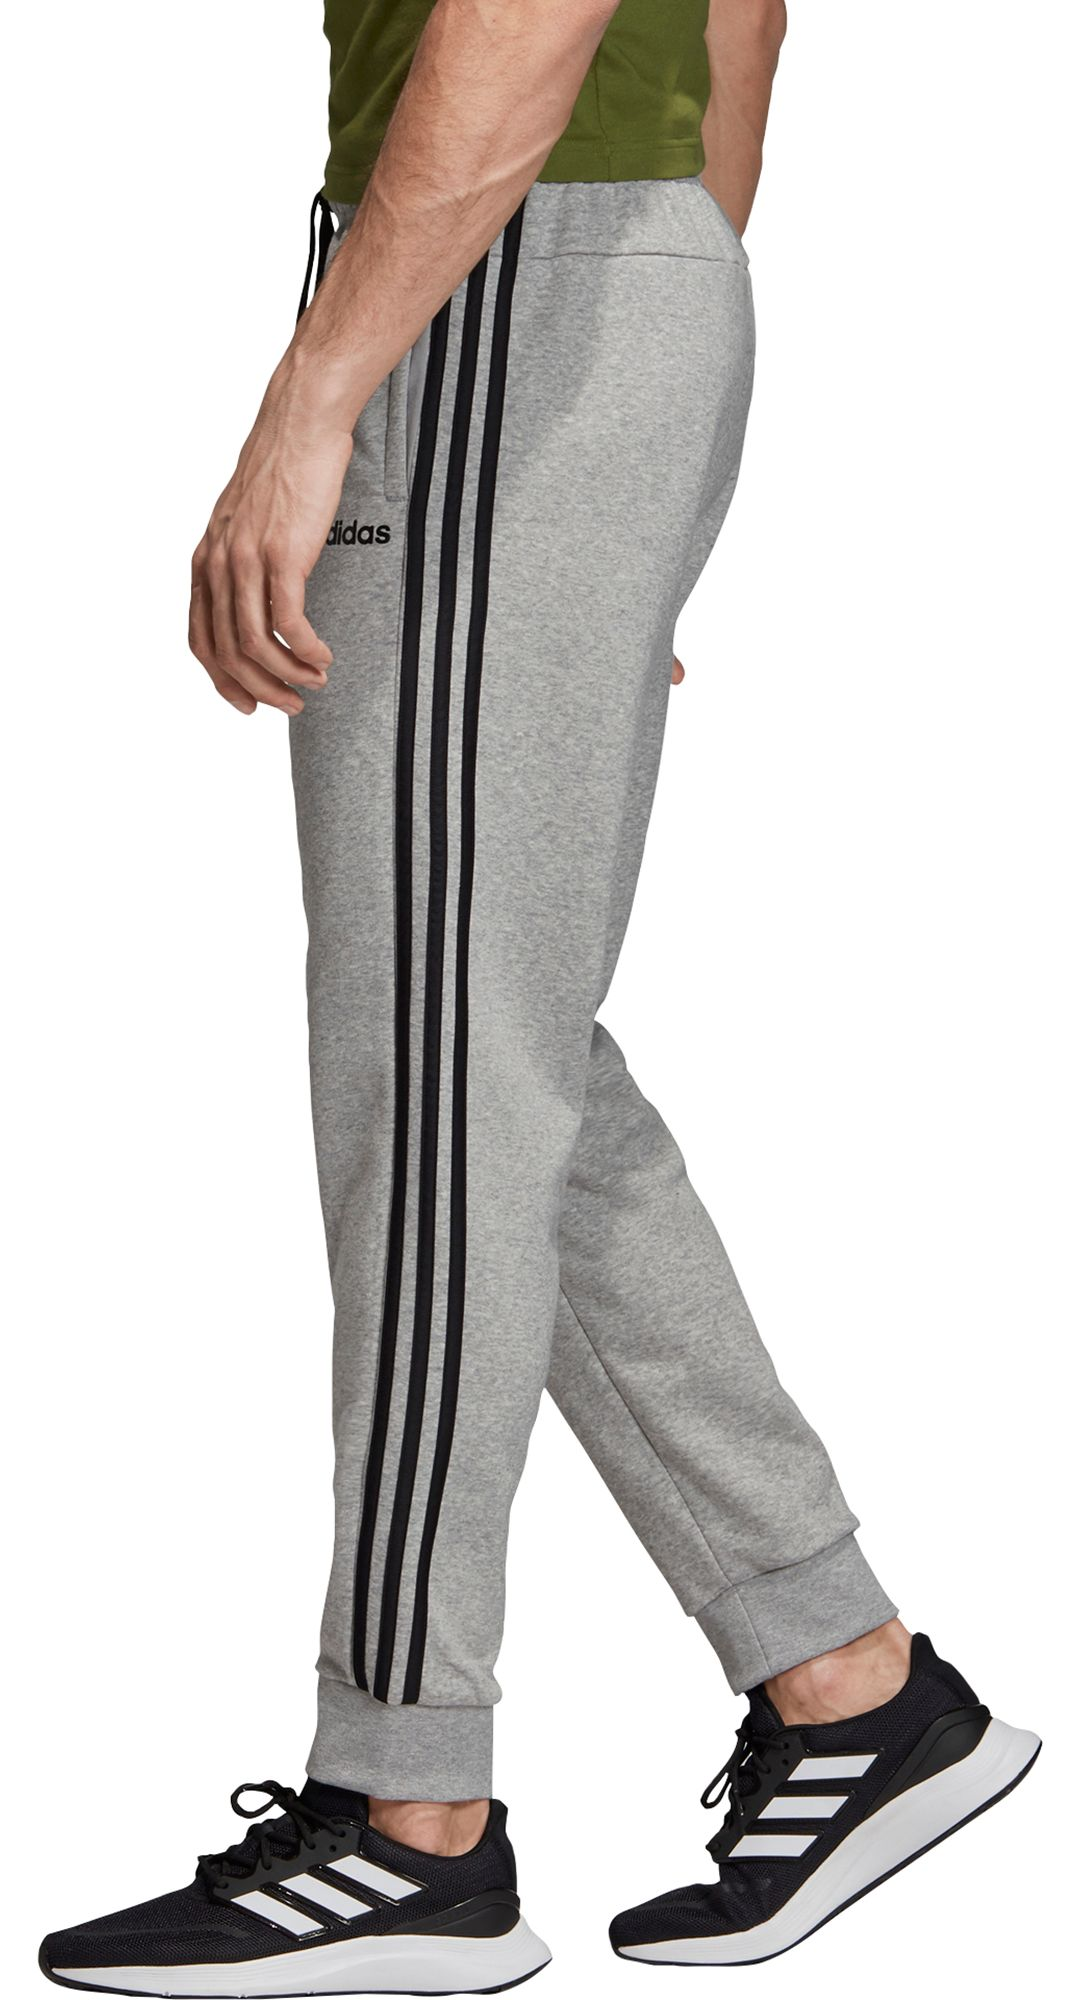 adidas Men's Essentials 3 Stripes Tapered Cuffed Pants